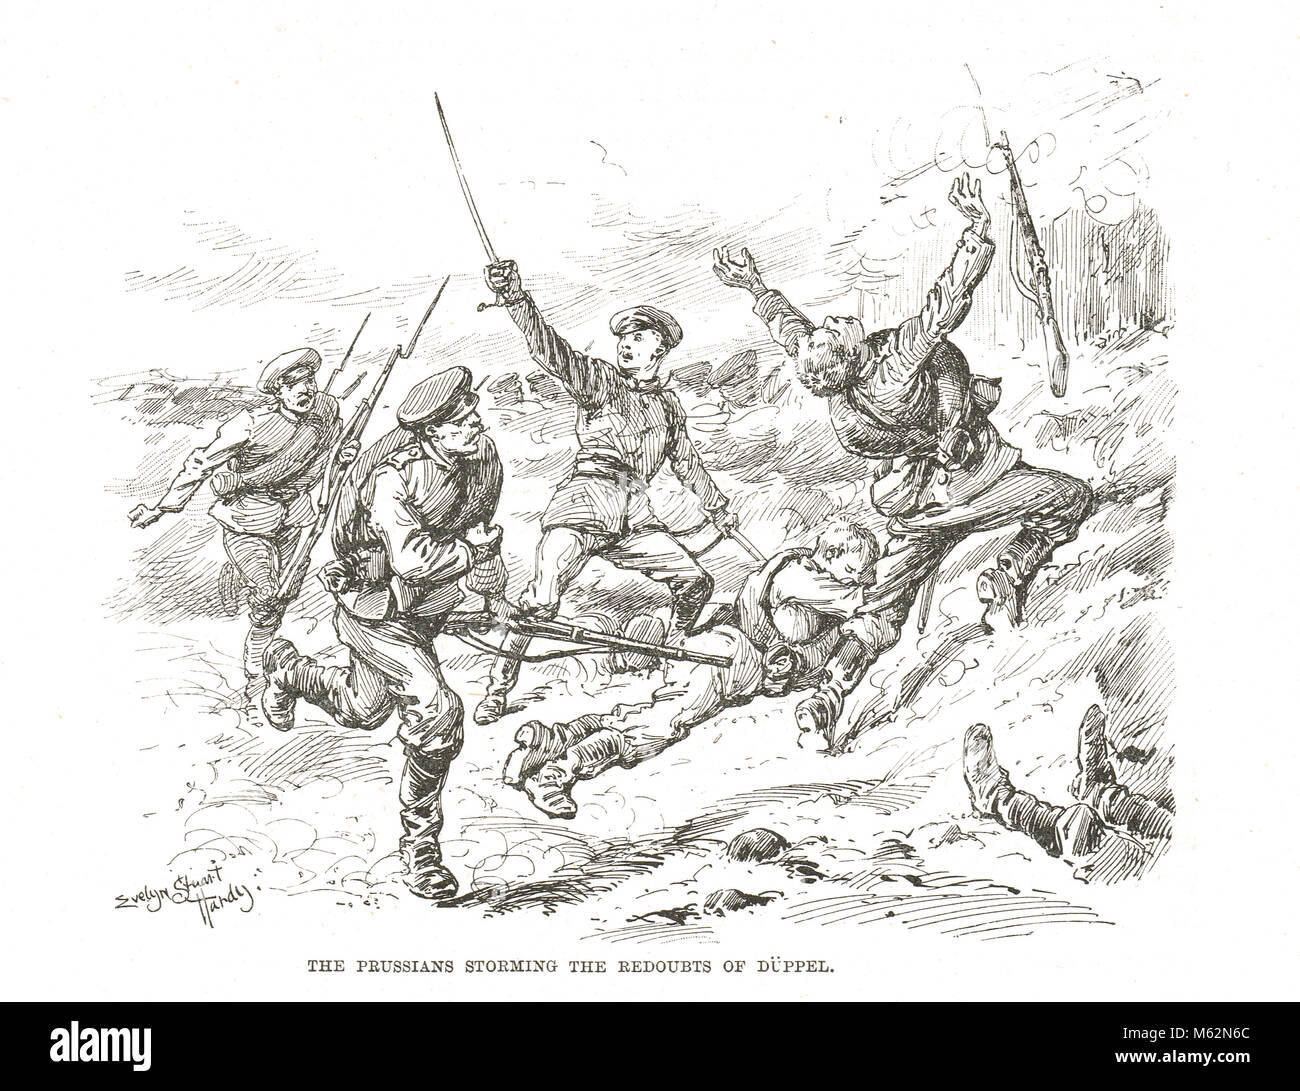 Prussians storming the redoubts at The Battle of Dybbøl, also known as Duppel, key battle of the Second Schleswig - Stock Image